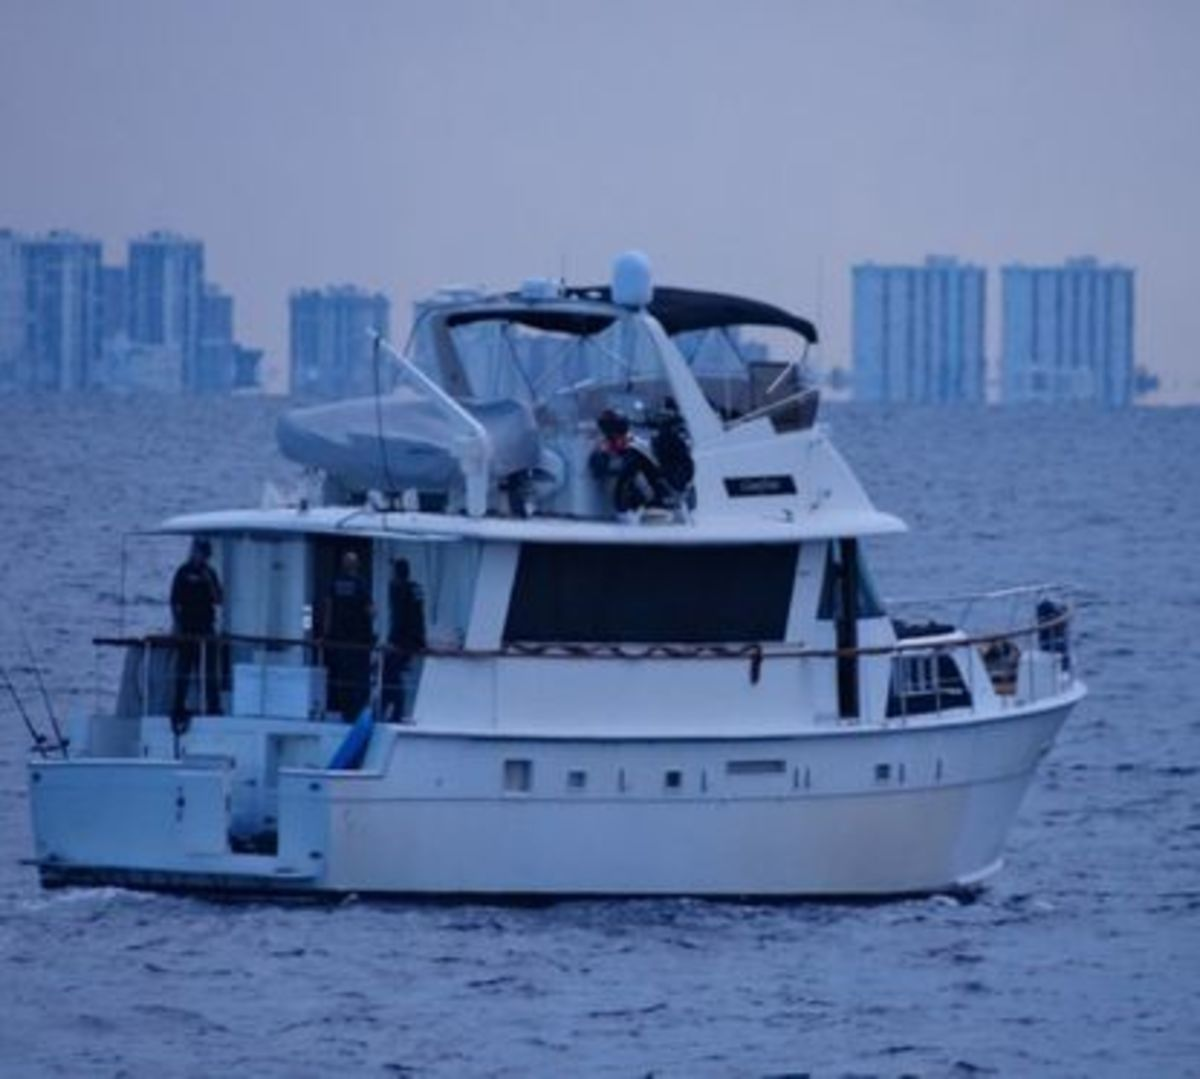 Hatteras 70 caught allegedly smuggling Chinese nationals without proper paperwork